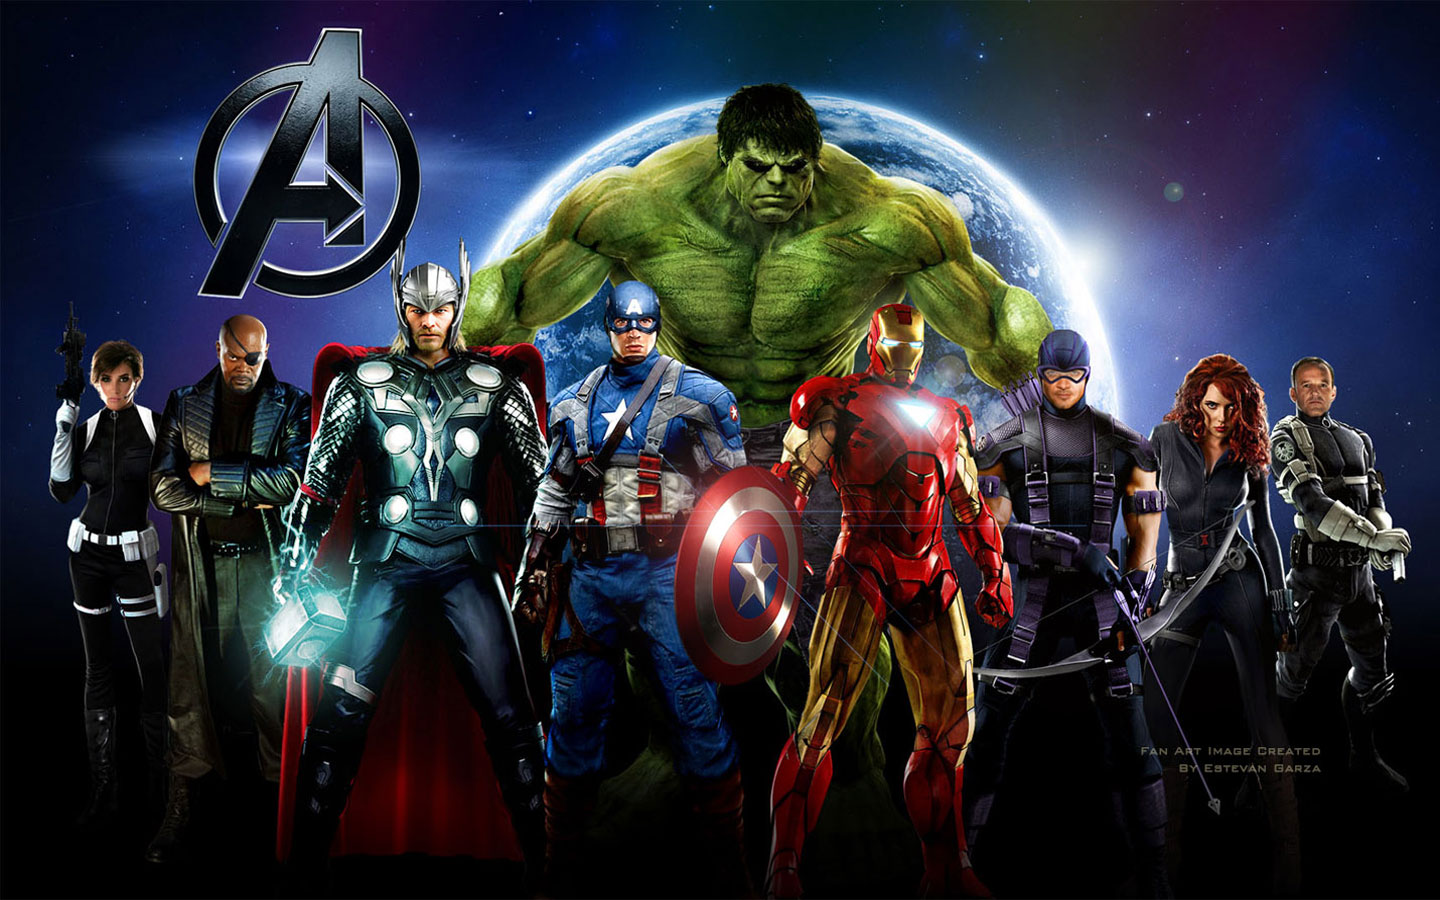 http://4.bp.blogspot.com/-S7RSFe5zh34/T60koke2_OI/AAAAAAAAAMM/IbuTa8UM1dc/s1600/The-Avengers-Movie-Widescreen-Wallpaper.jpg